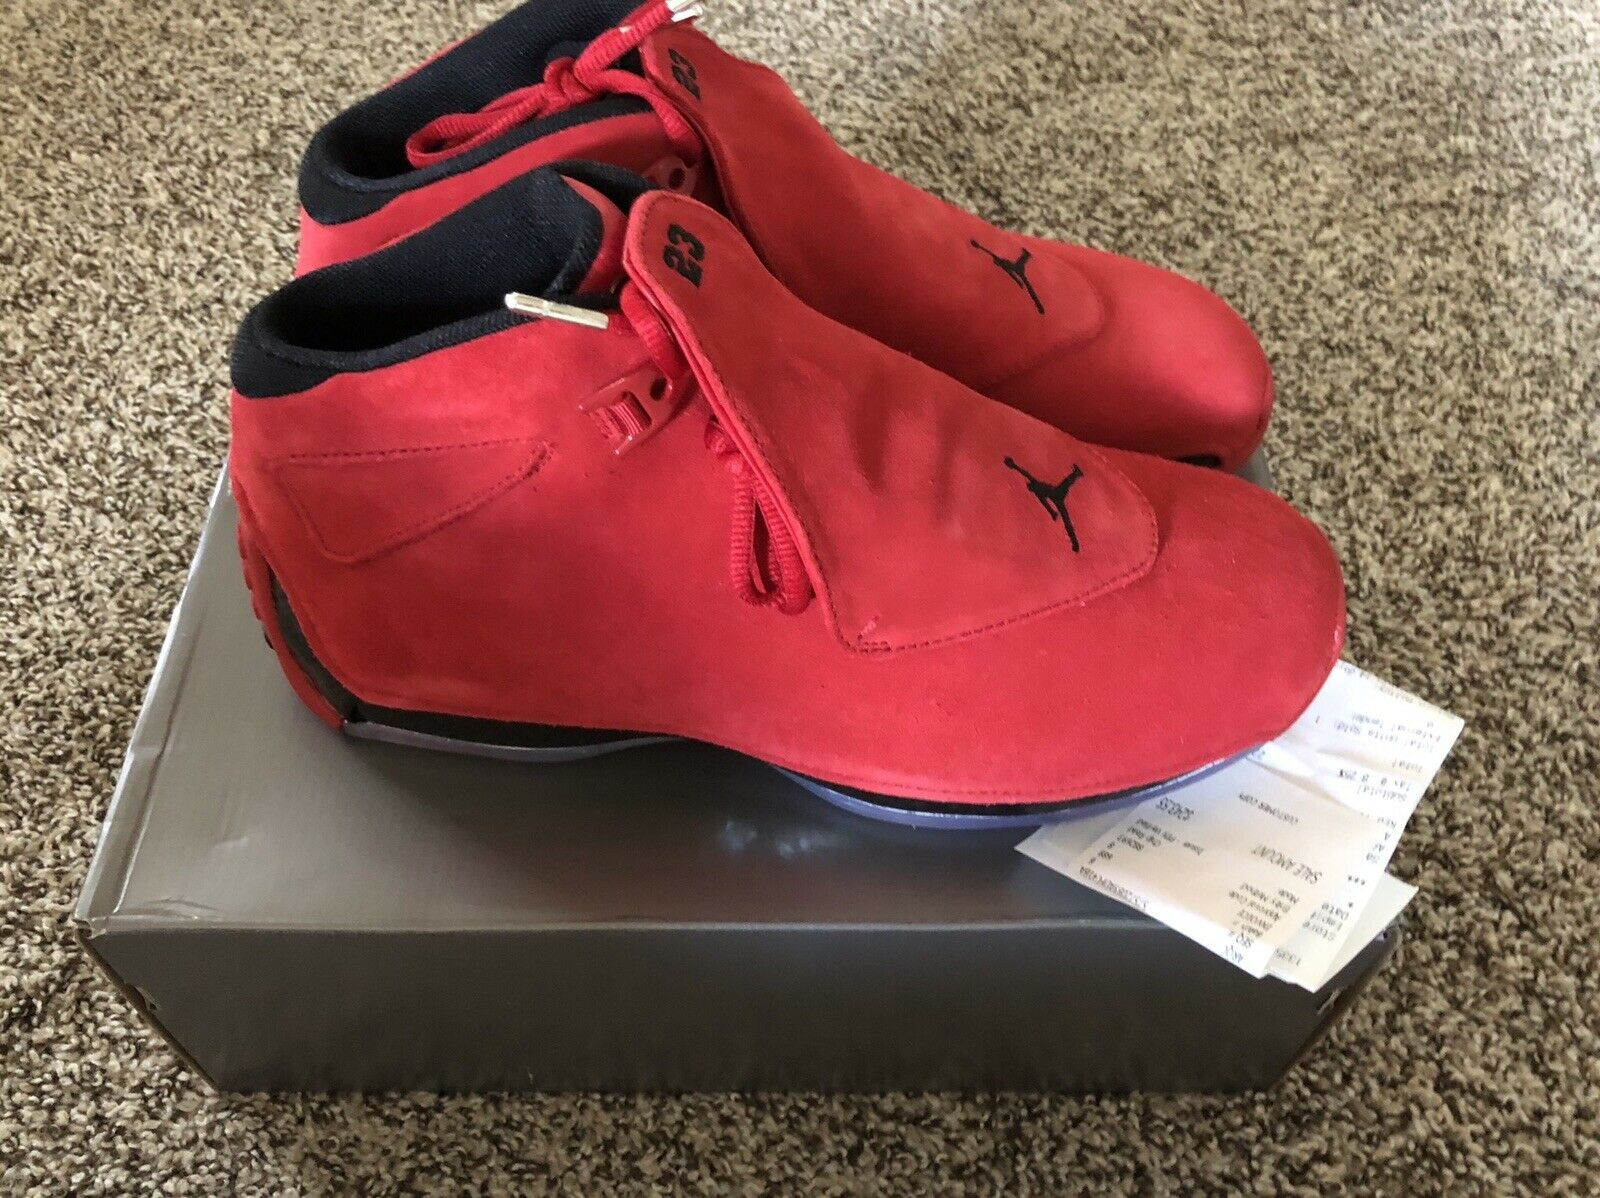 Jordan Retro 18 toro tamaño Air 11